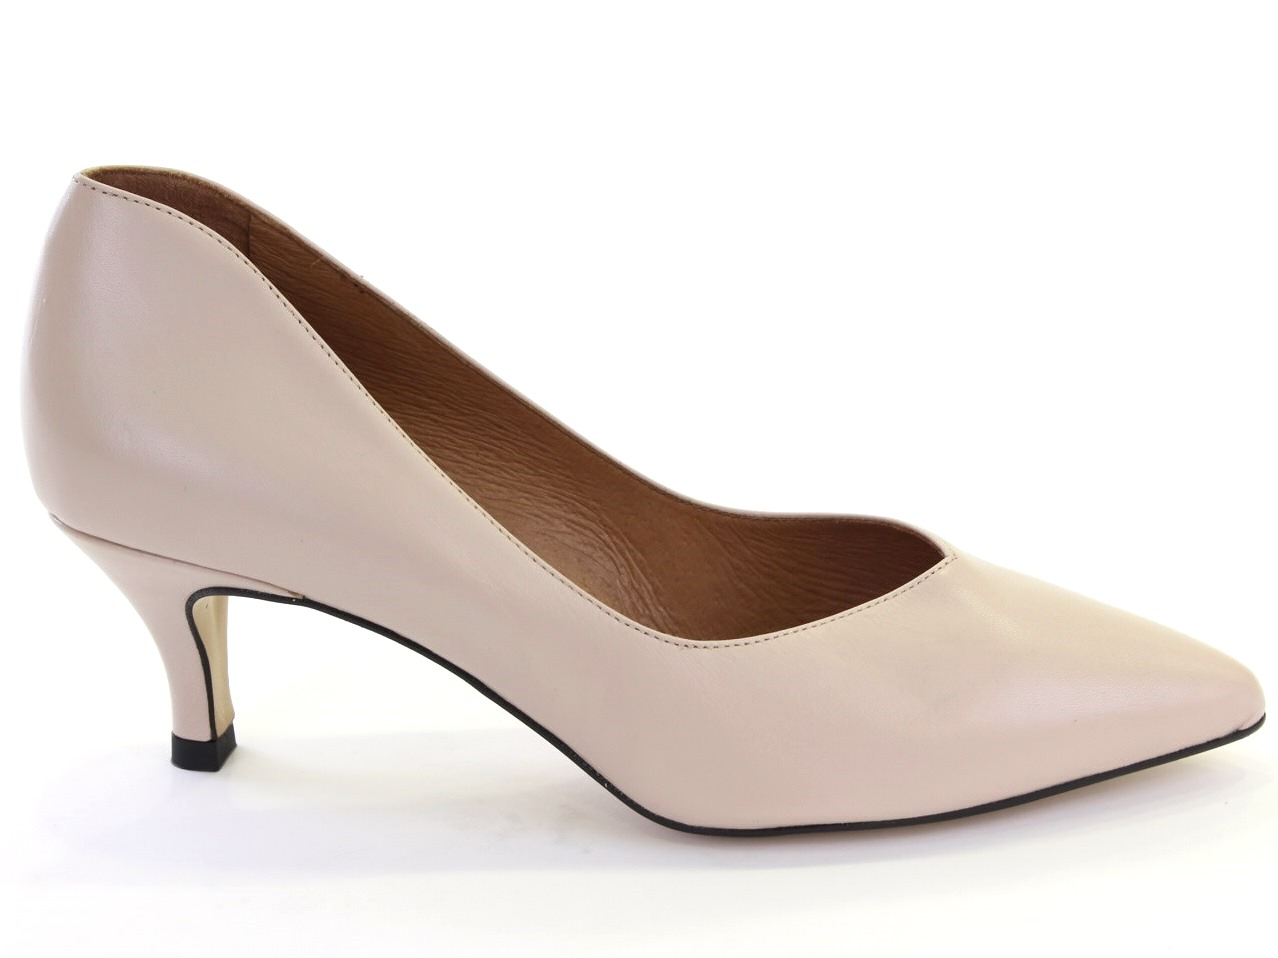 Pumps Sofia Costa - 085 10181